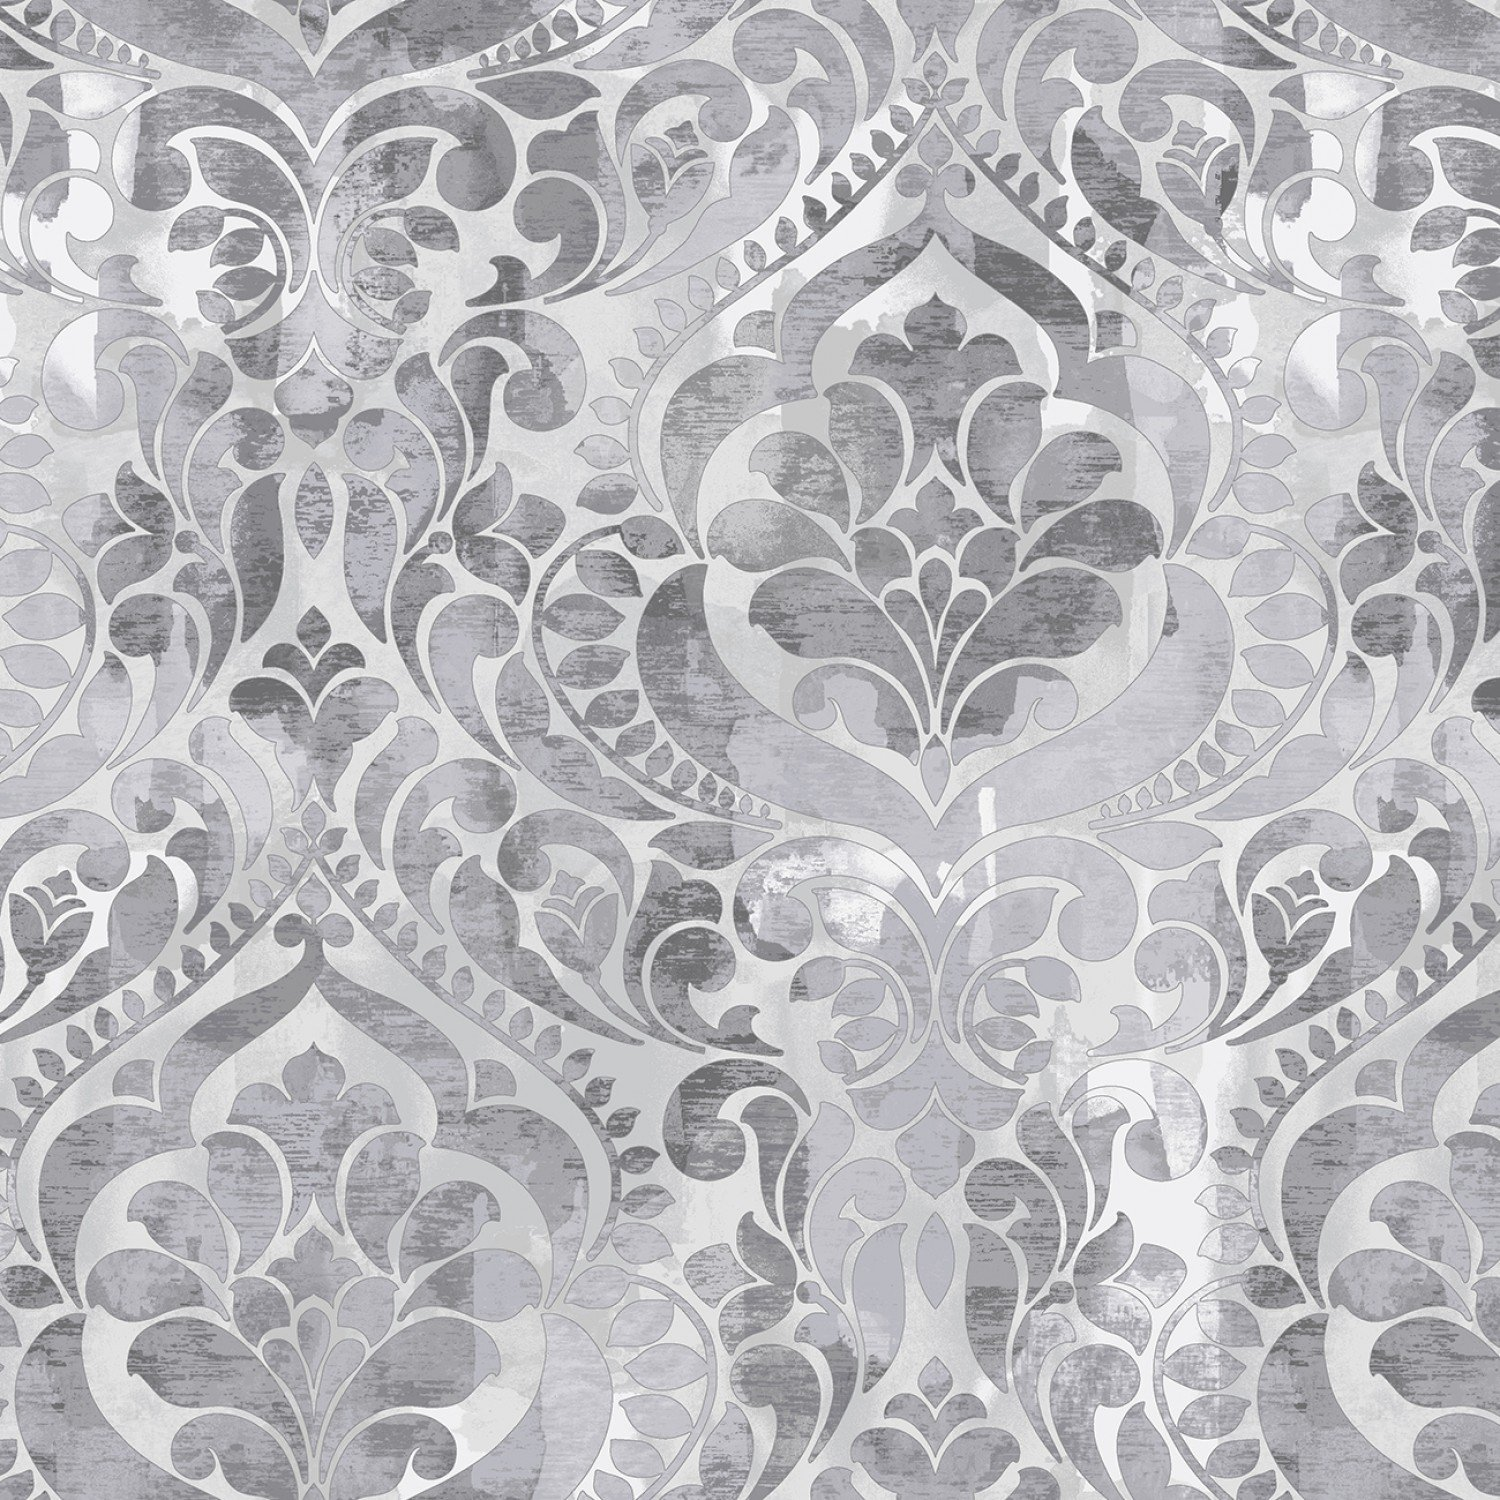 SE-Fiorenza - Digital 108 Wide 5236-90 Light Gray - Damask